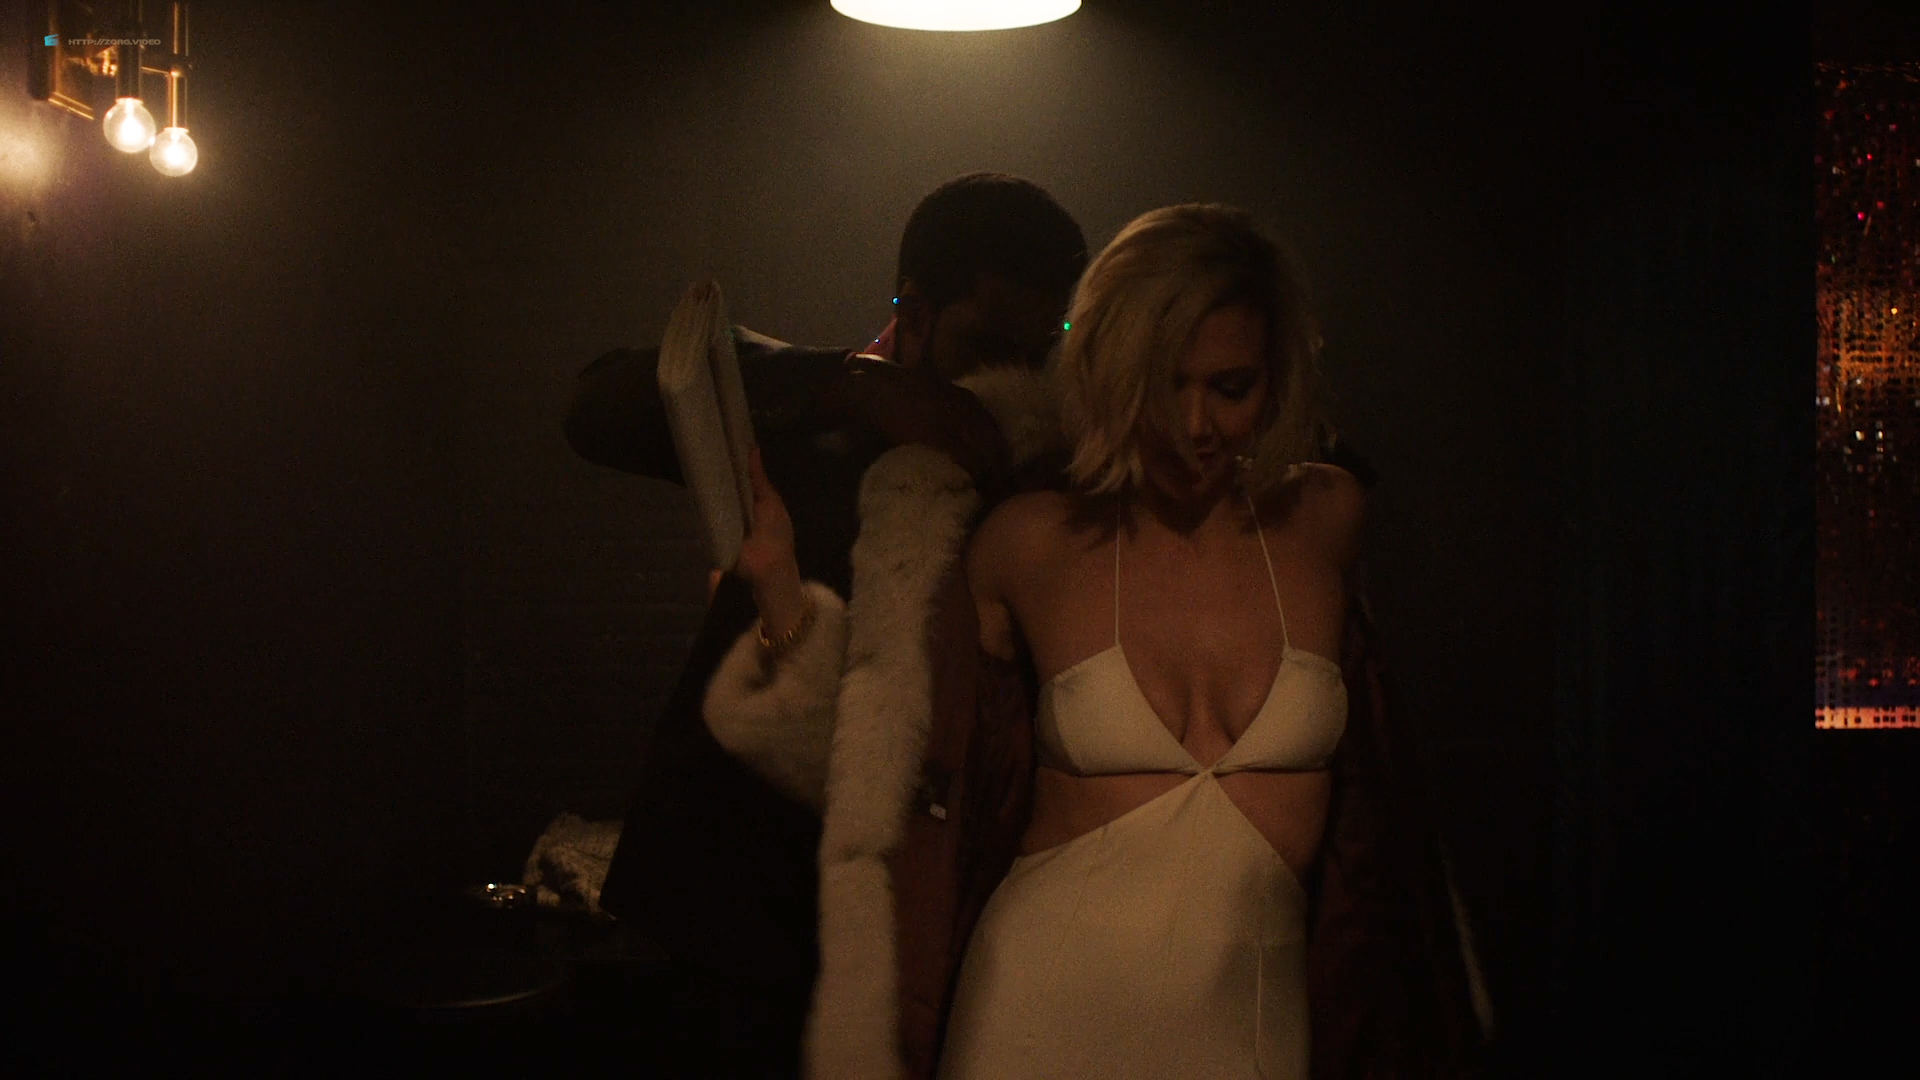 Margarita Levieva nude sex Maggie Gyllenhaal and Emily Meade hot - The Deuce (2018) s2e1 HD 1080p (16)